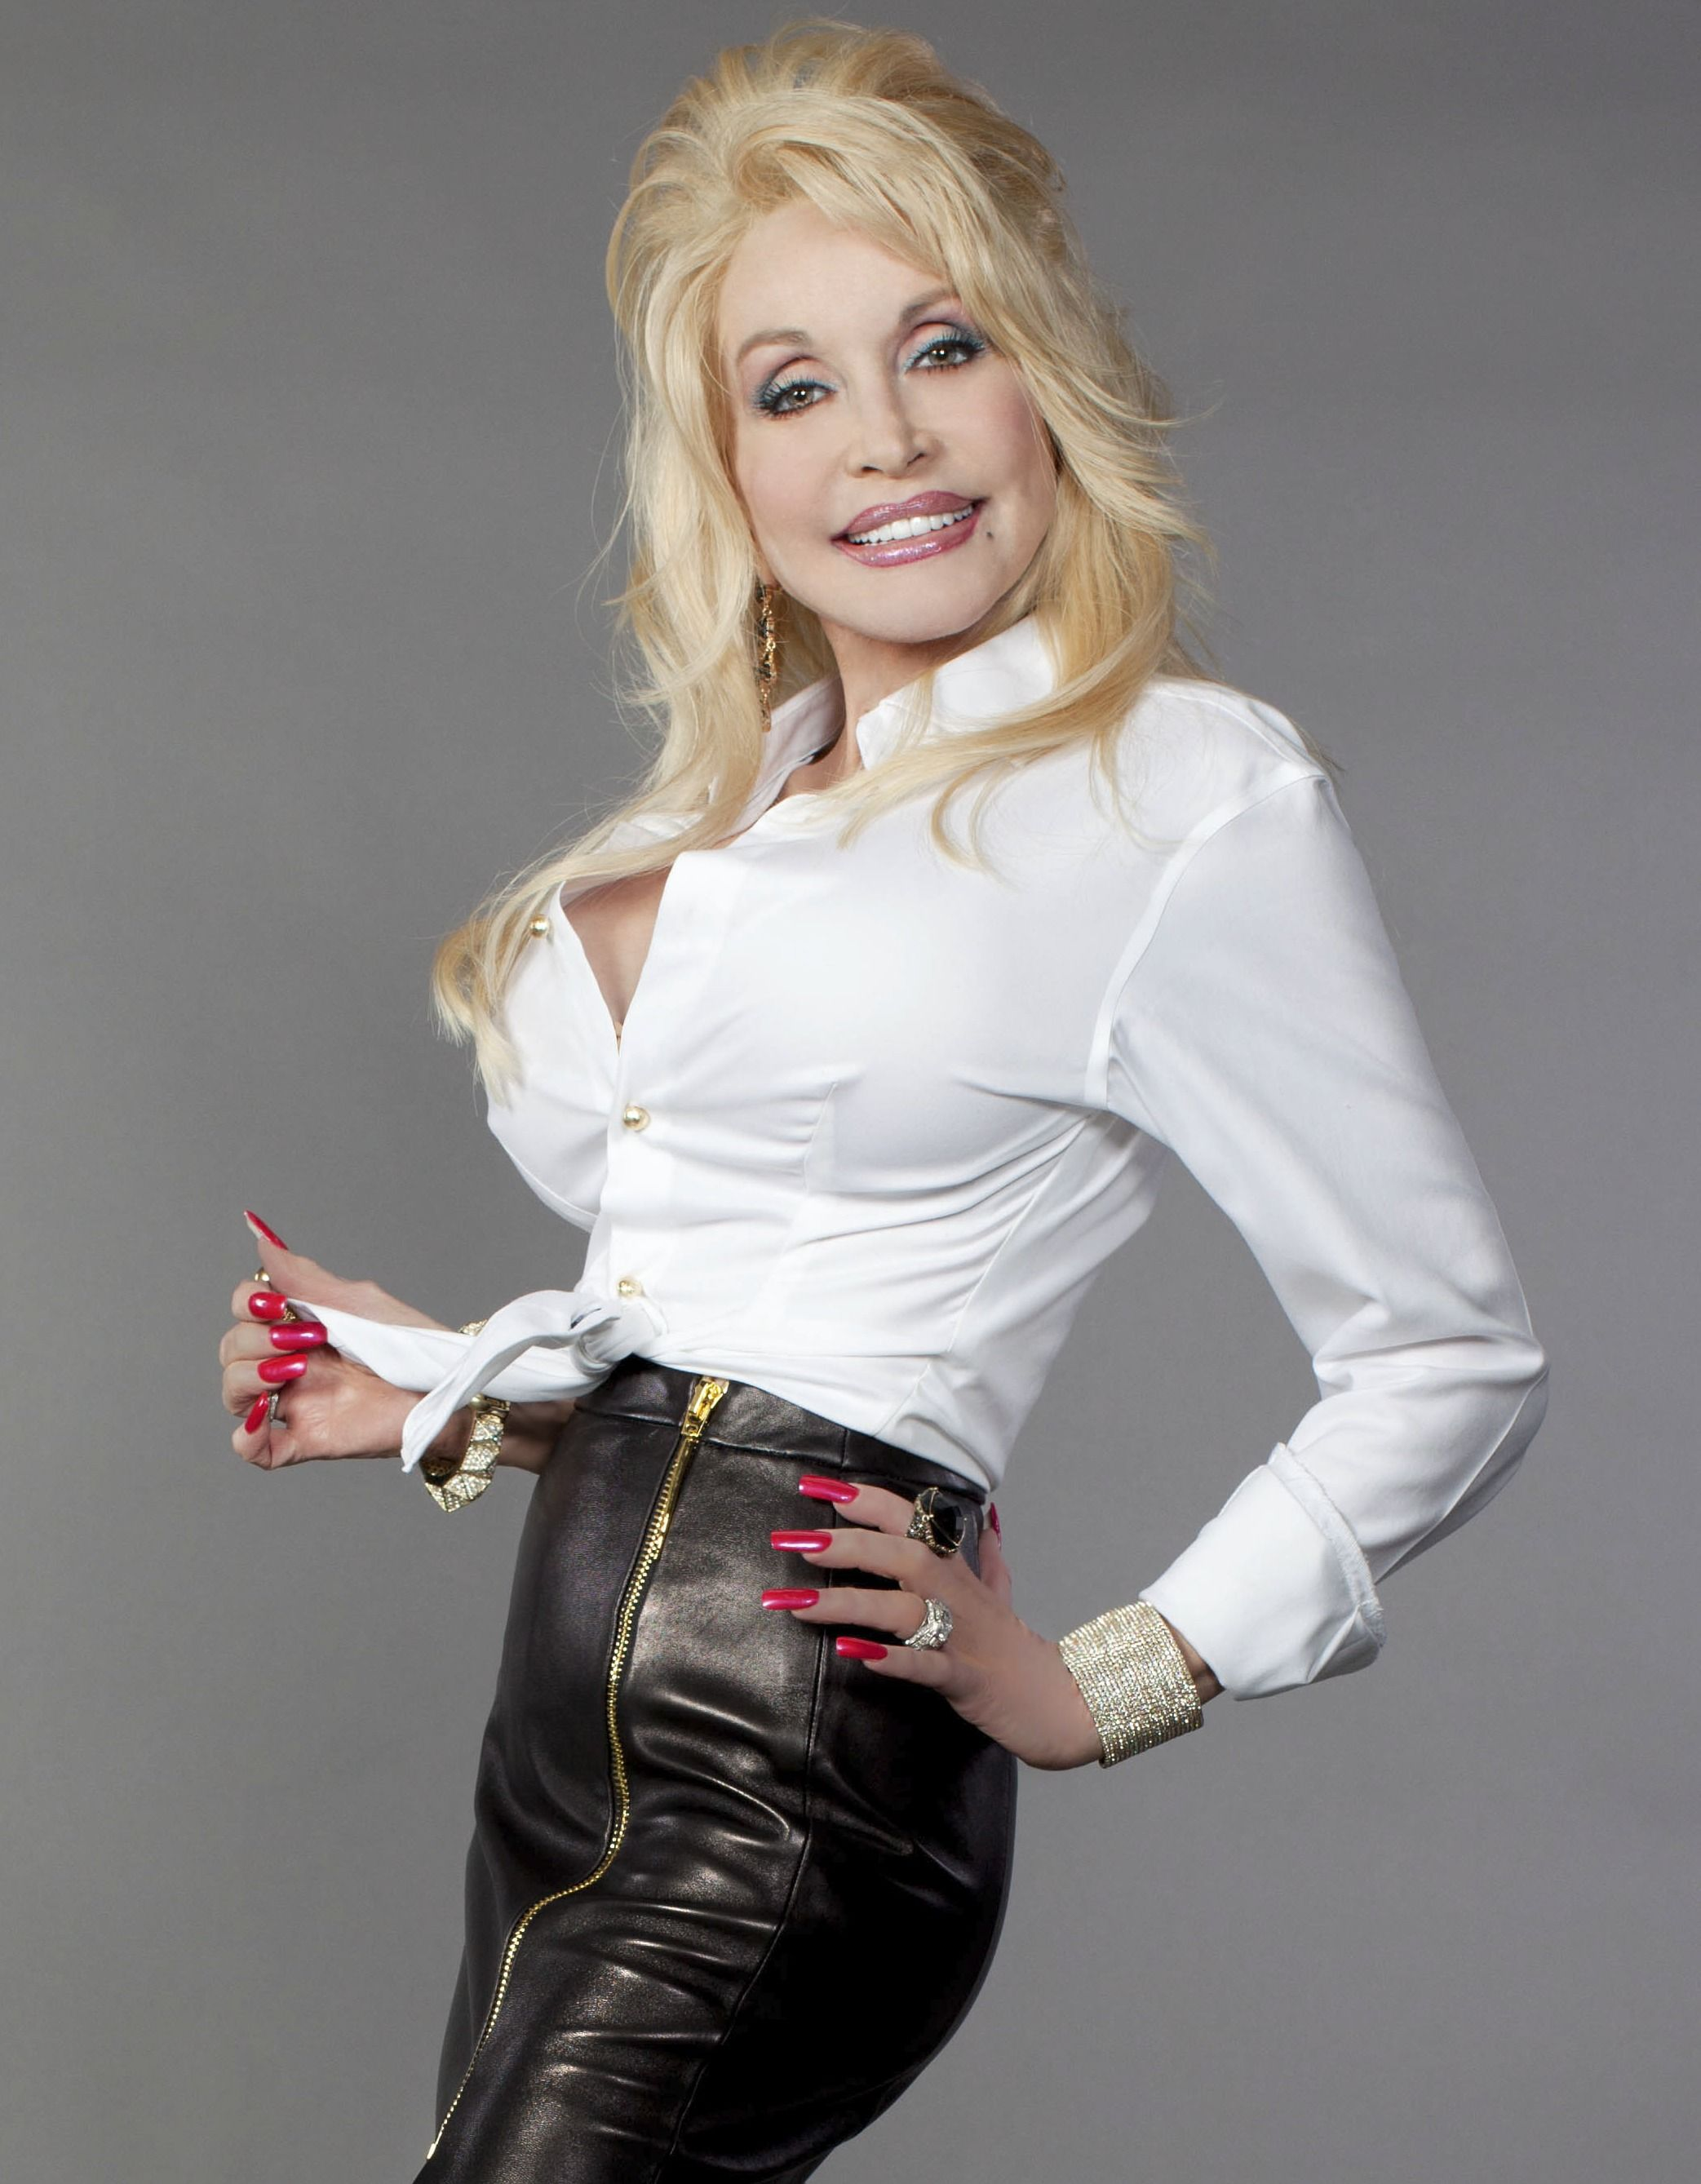 hot or not dolly parton Answers to your questions about dolly parton's life, age, relationships, sexual orientation, drug usage, net worth and the latest gossip.